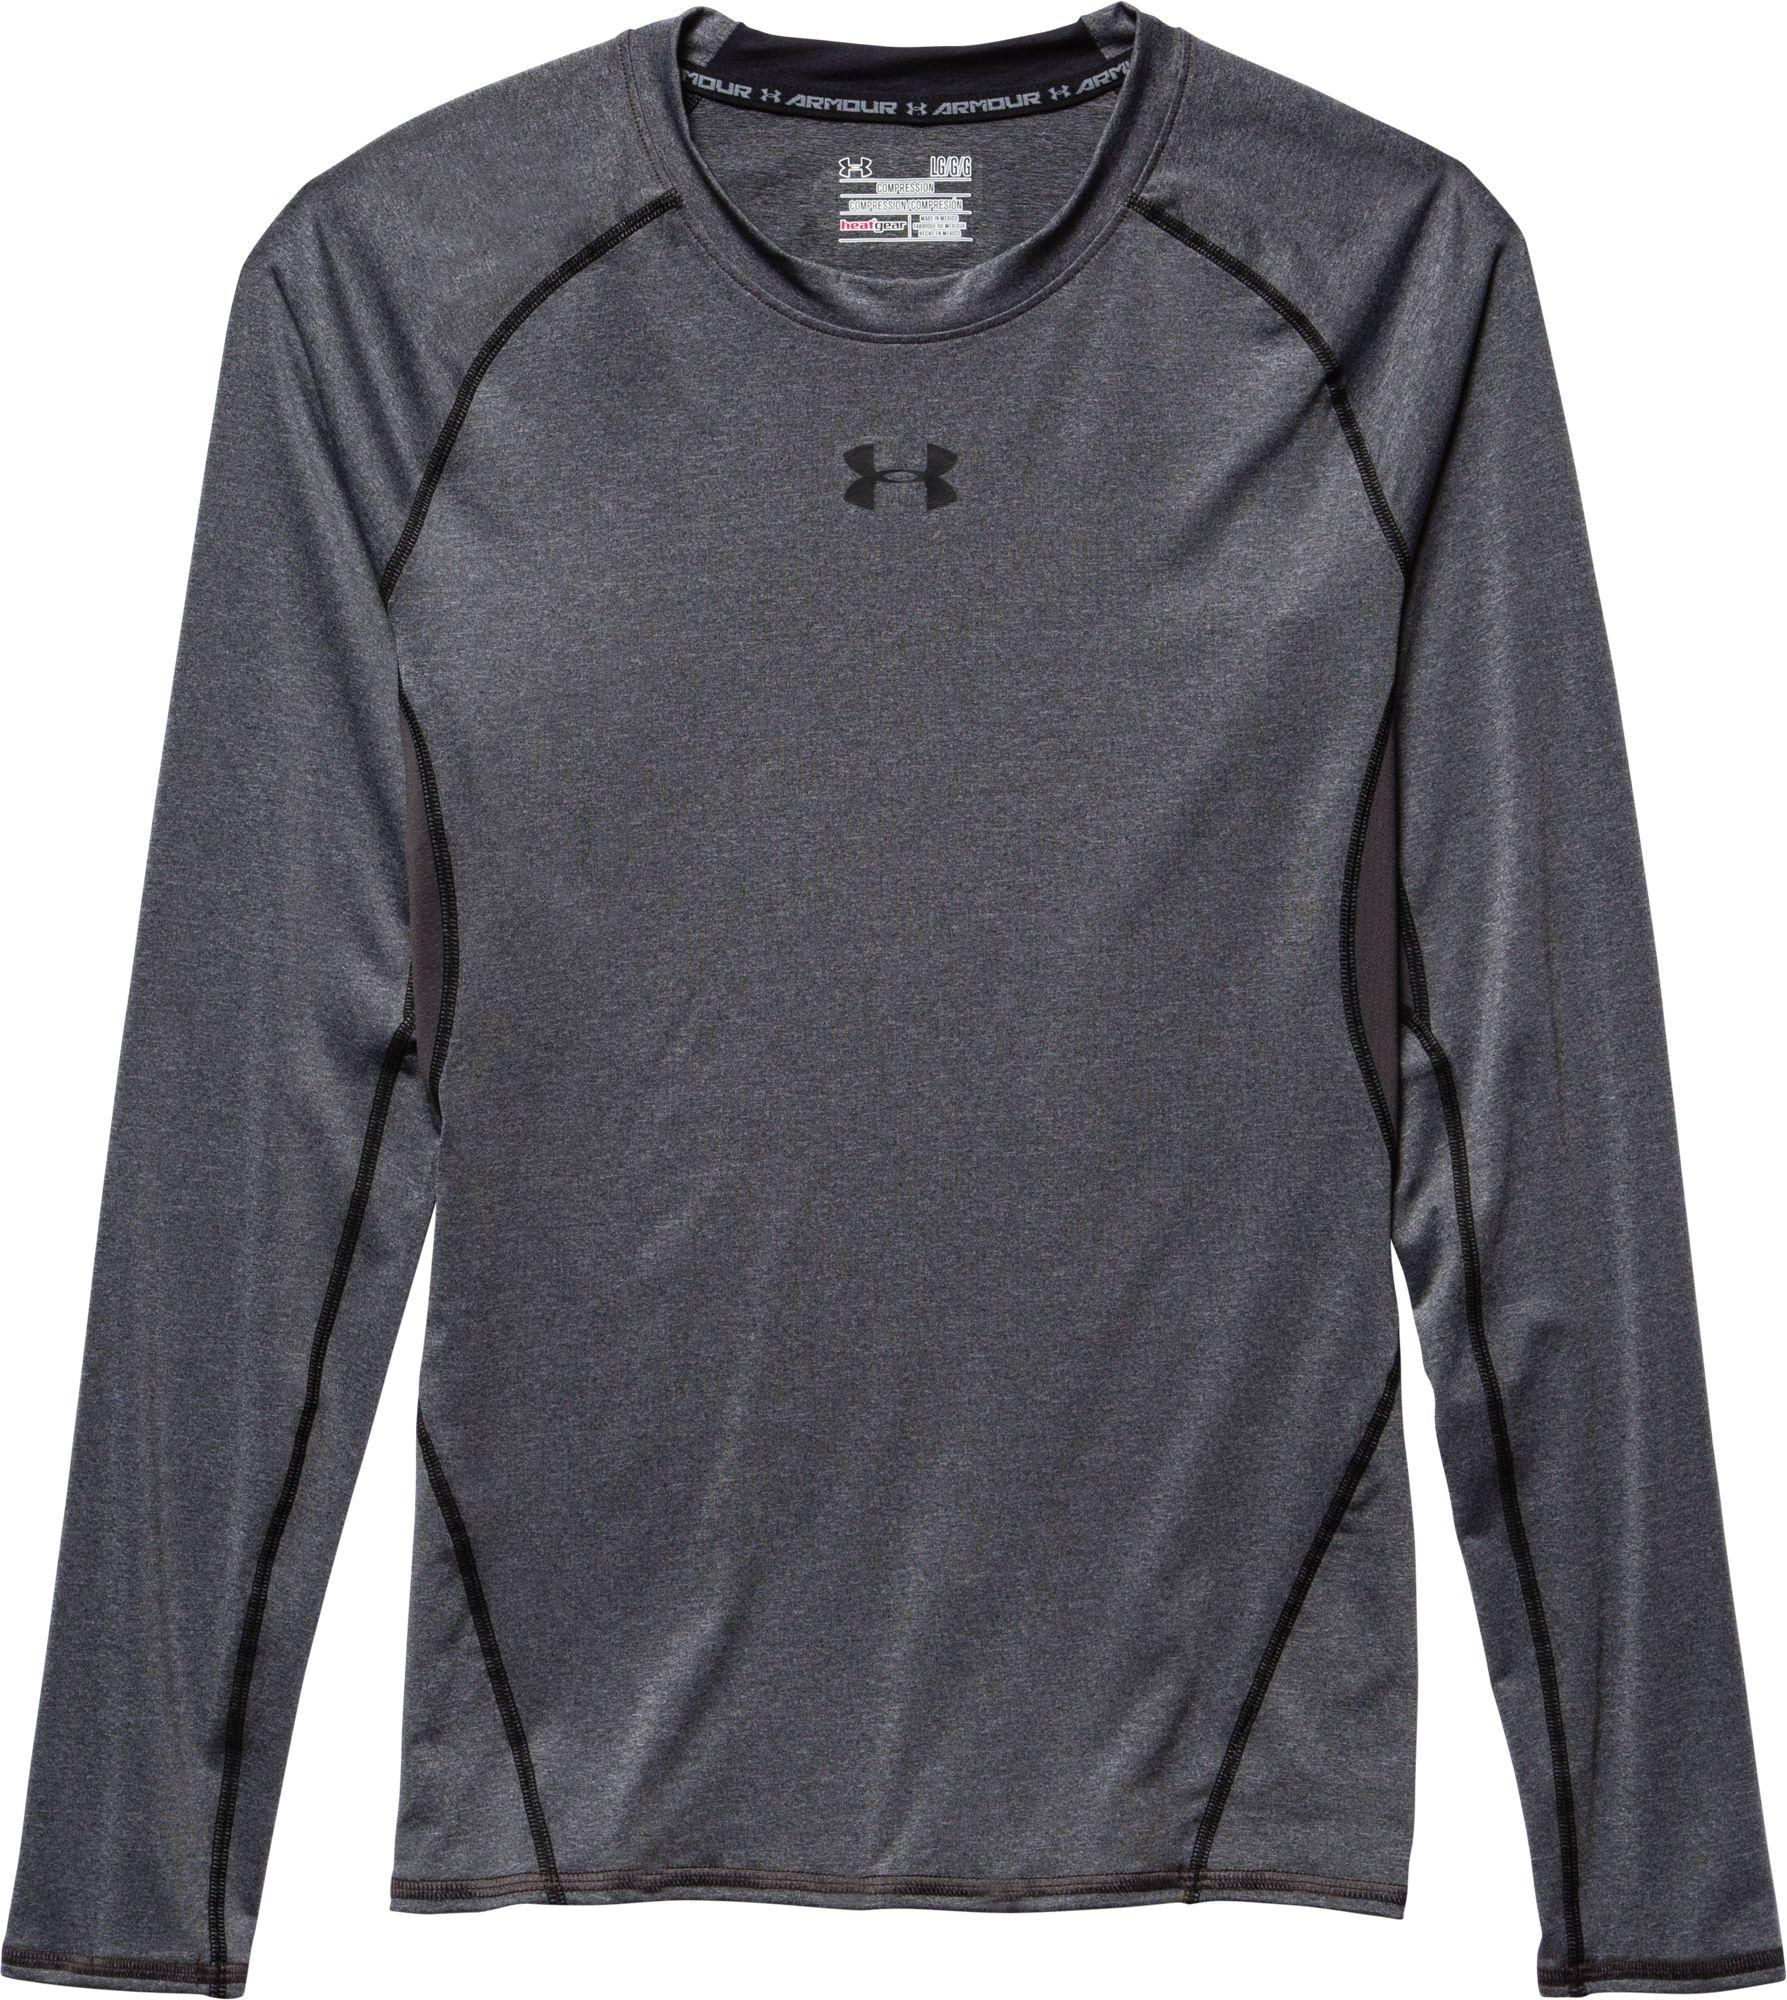 2429272a Under Armour Heatgear Armour Long Sleeve Shirt in Black for Men - Lyst